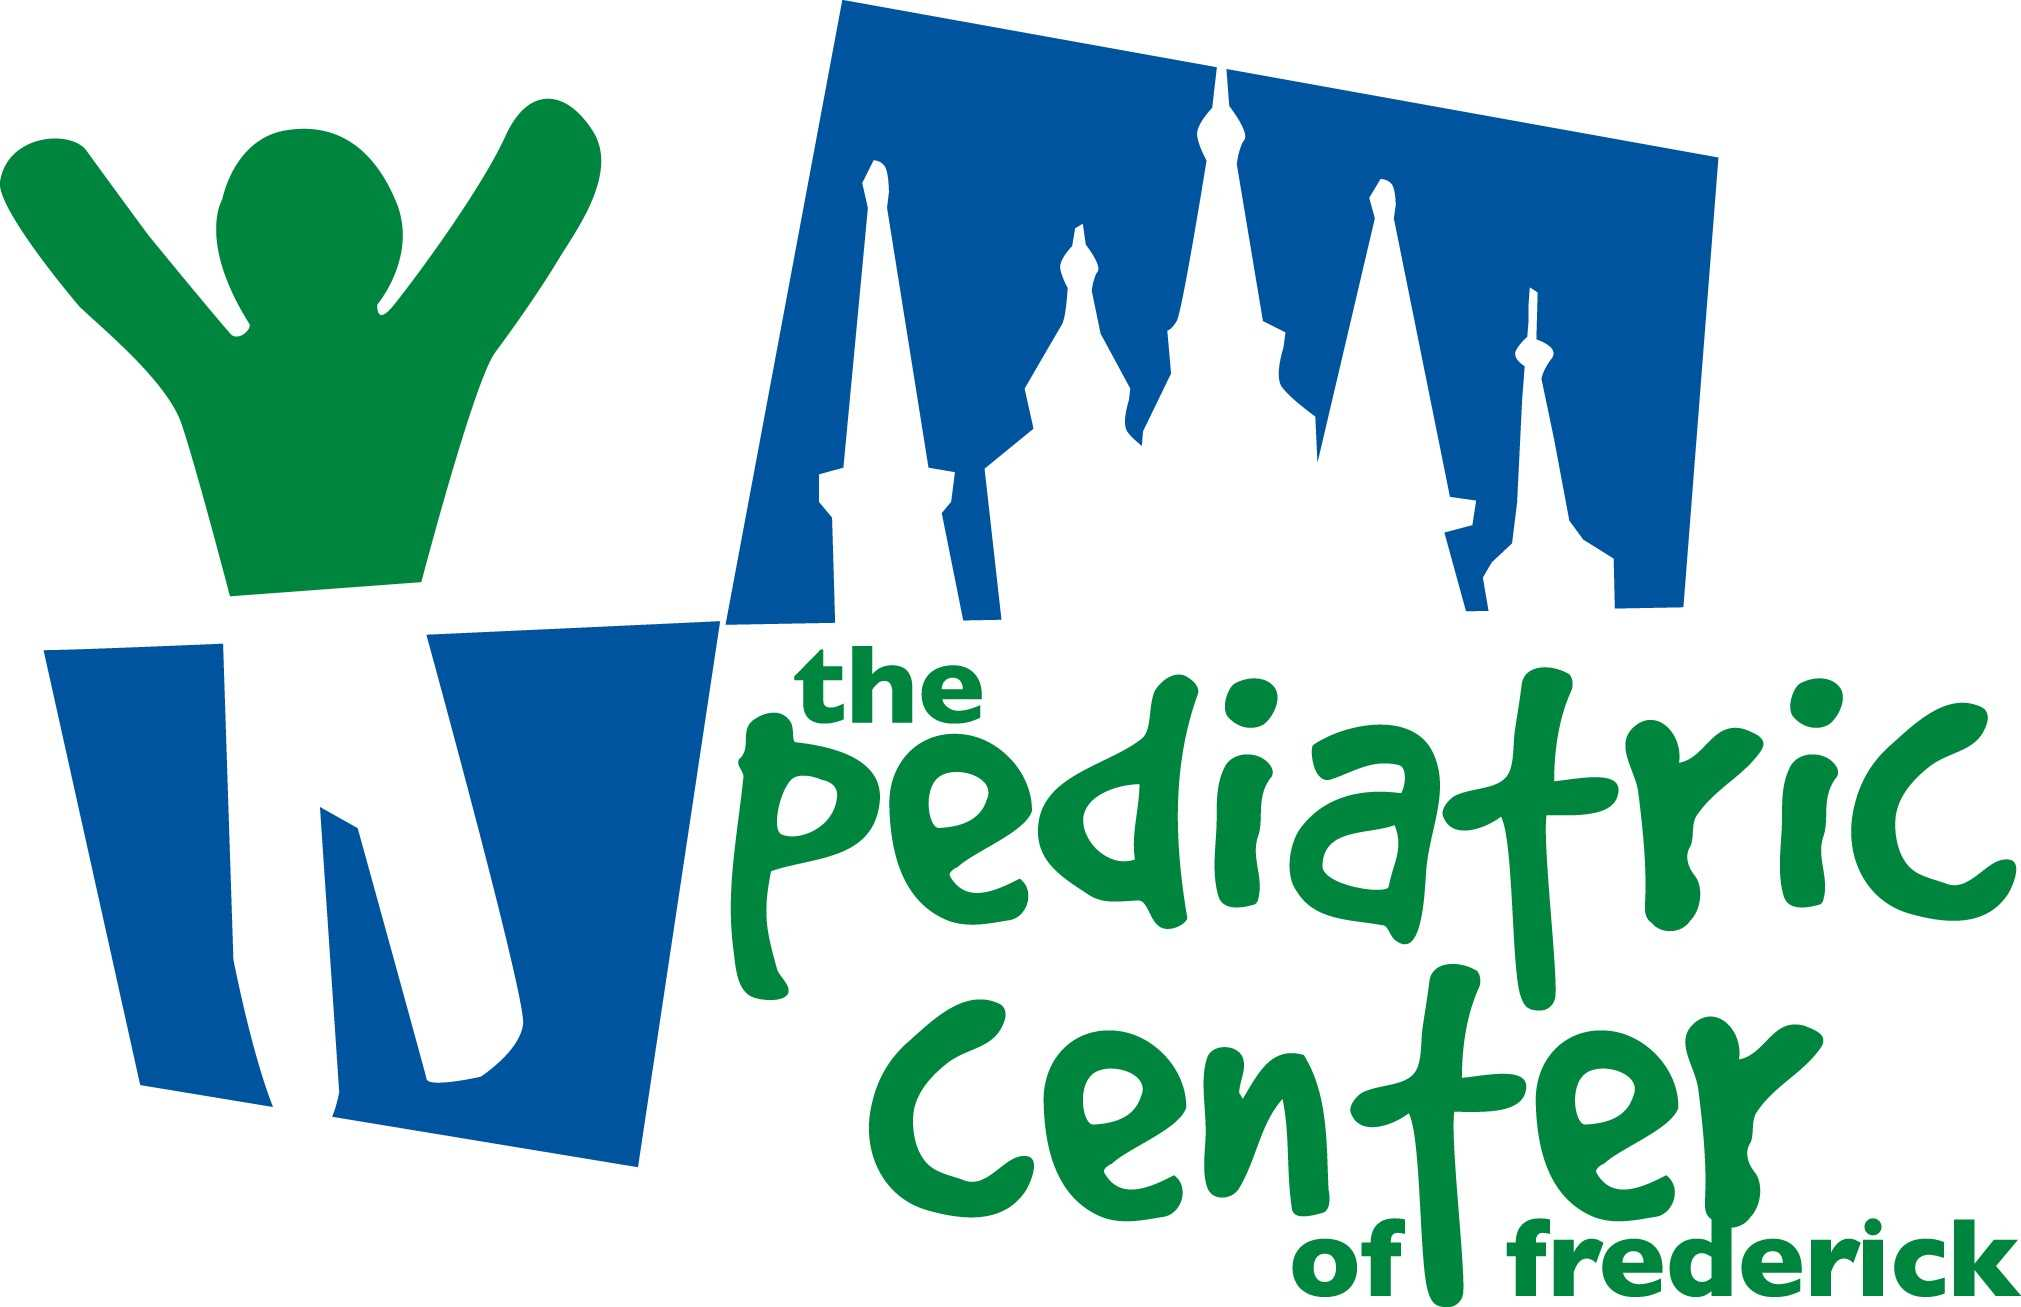 Pediatric Center of Frederick